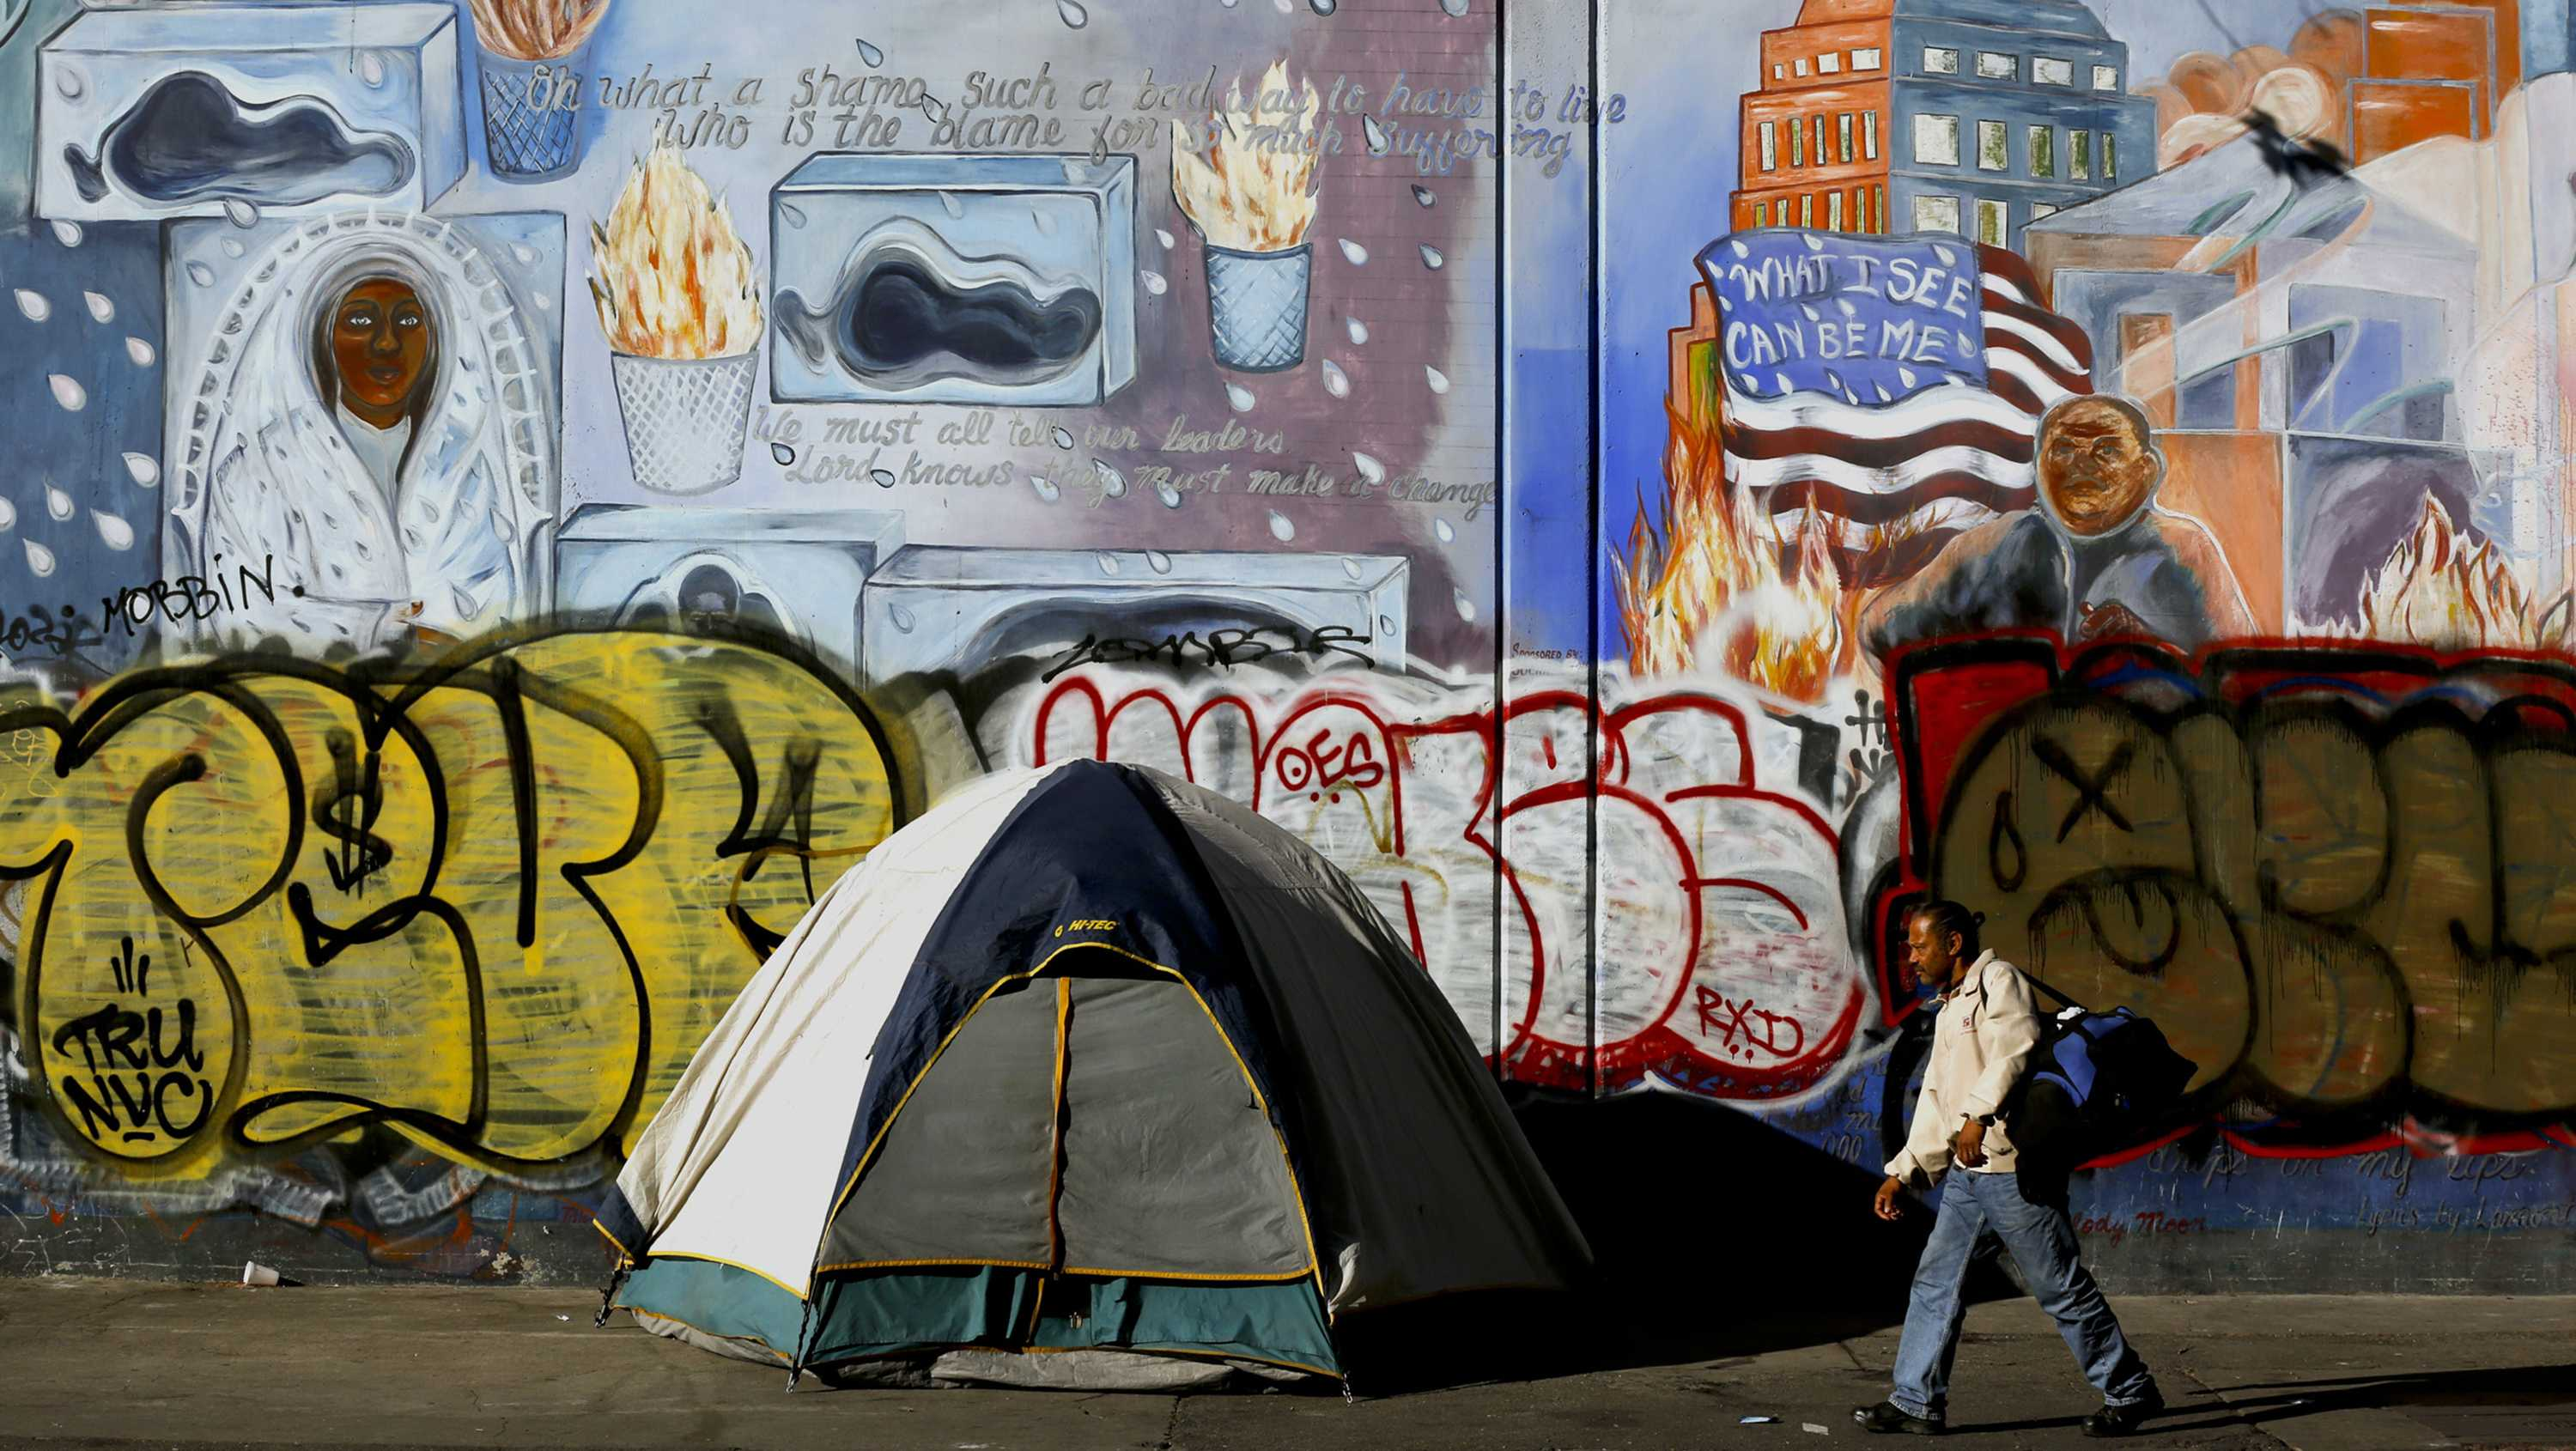 Everything is quiet along 5th Street in downtown Los Angeles, Calif. prior to the sweeps by Los Angeles police officers and sanitation workers who were clearing out the homeless and their belongings, then power washing the sidewalks and gutters, on April 18, 2016. (Mark Boster/Los Angeles Times/TNS)